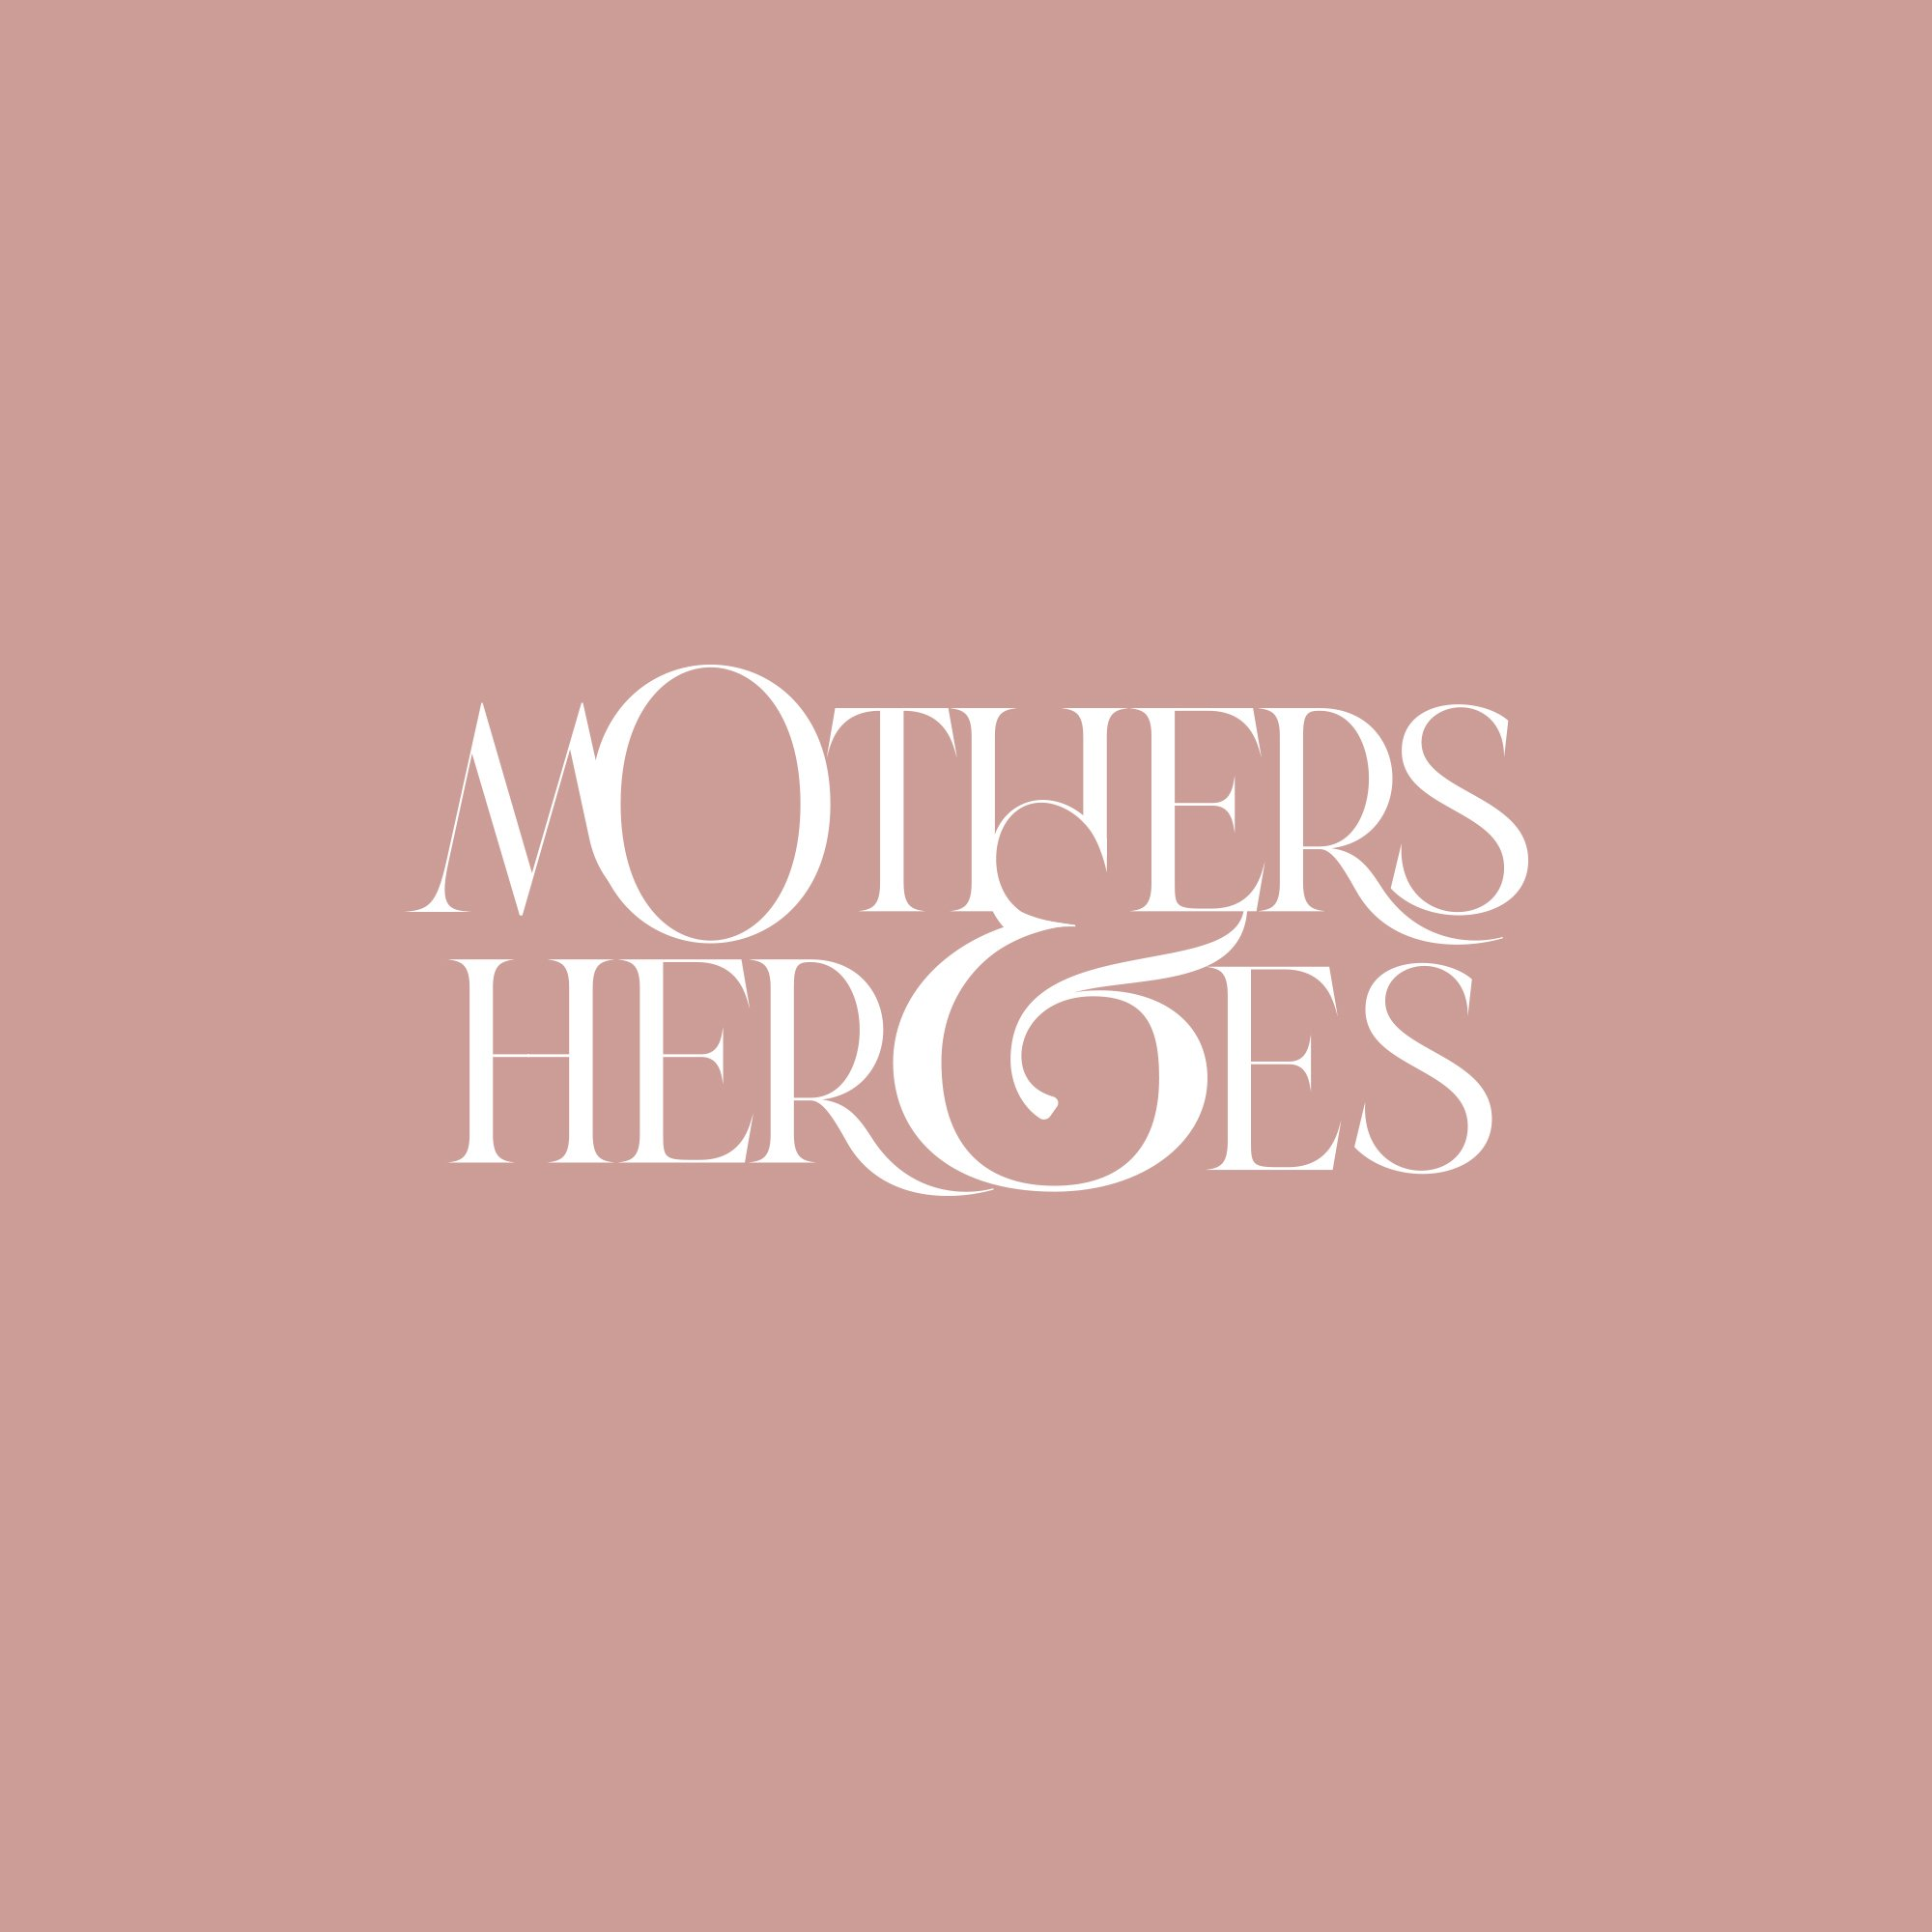 mothers and heroes white text on muted rose background